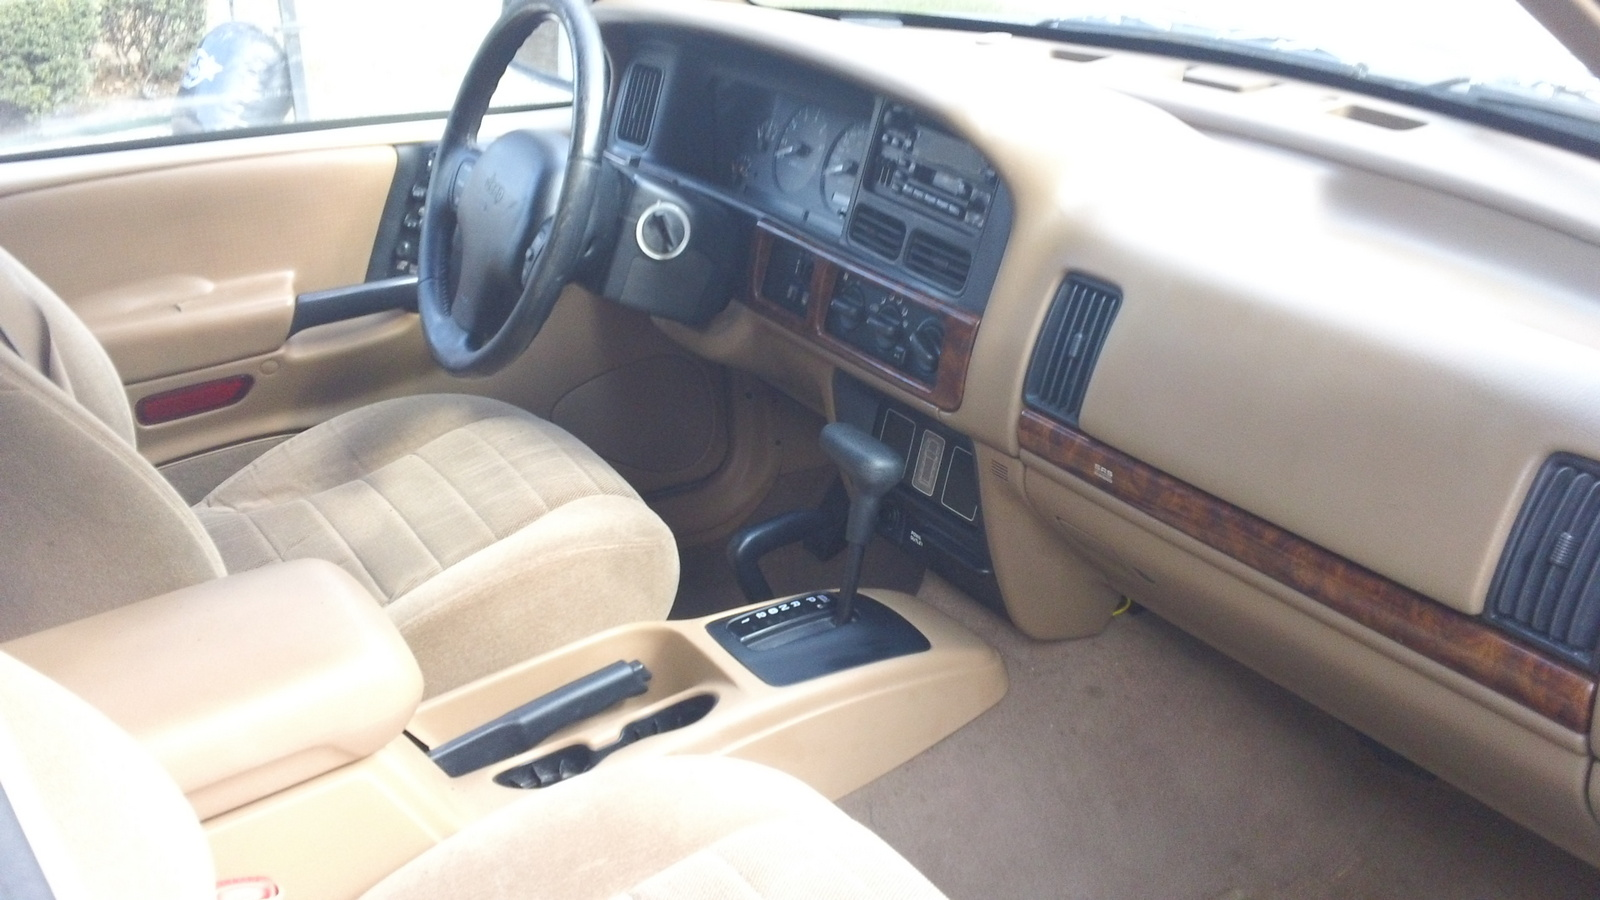 1998 jeep grand cherokee interior pictures cargurus 1993 jeep grand cherokee interior